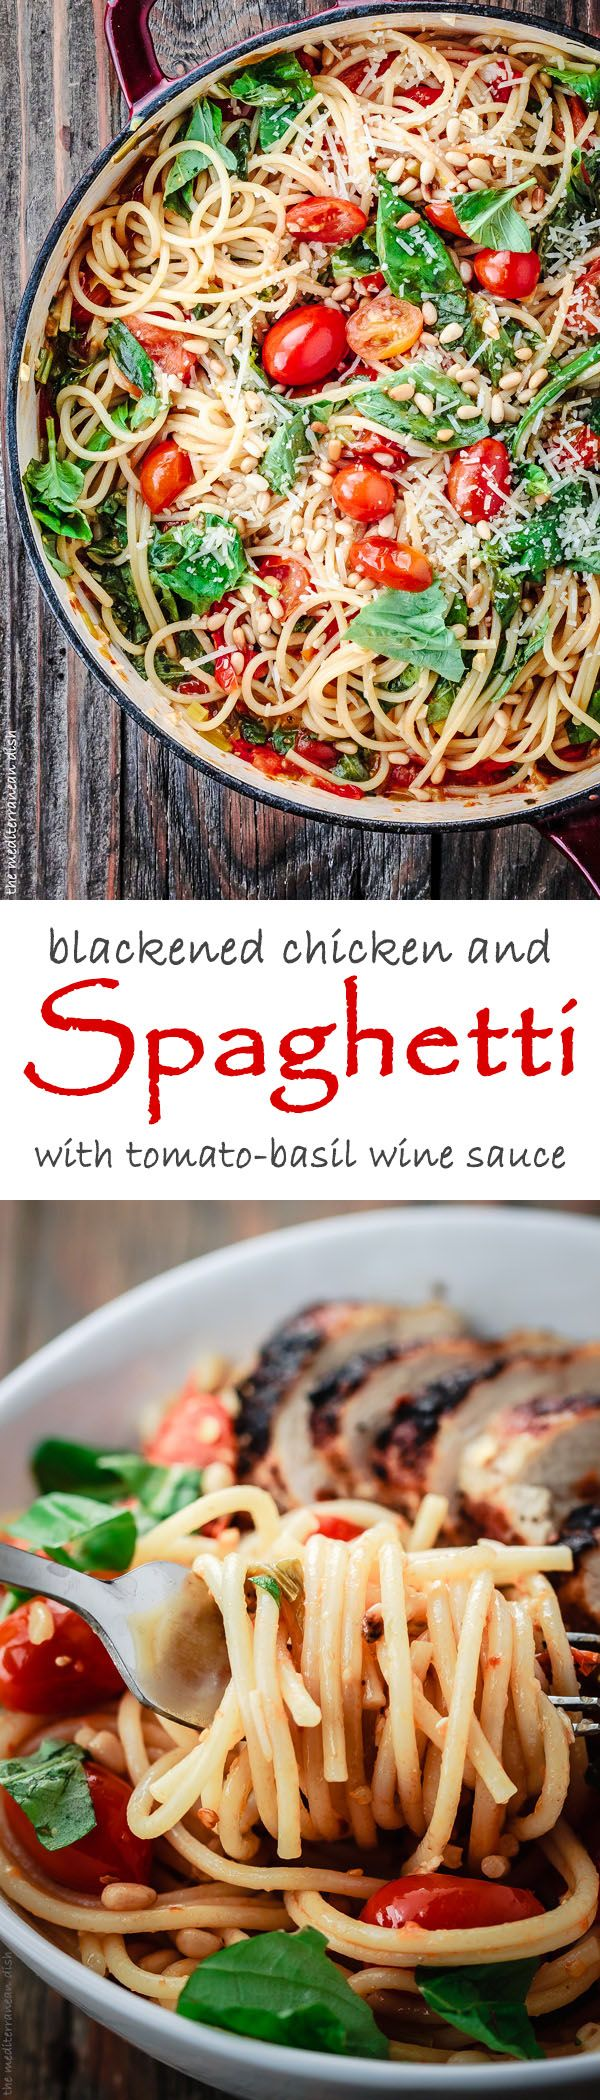 Blackened Chicken and Spaghetti Recipe with Tomato-Basil Wine Sauce. Easy chicken and spaghetti dinner w/ a light sauce, fresh tomatoes and herbs! Delicious